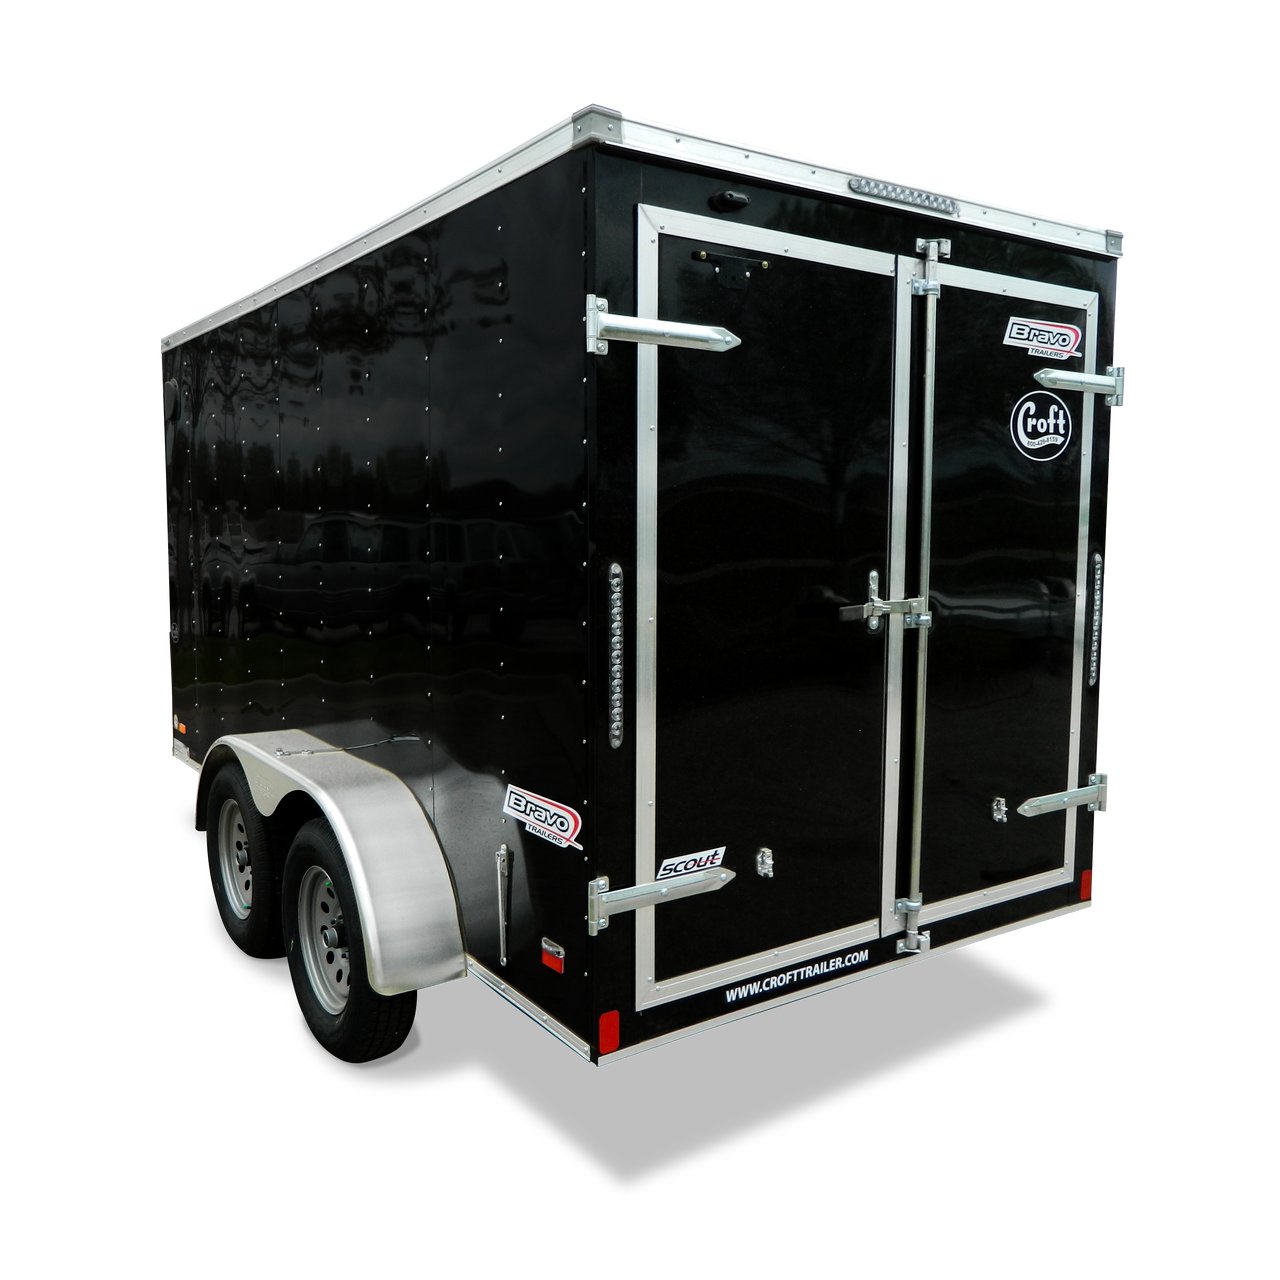 SC612TA2D --- 6' X 12' Enclosed Tandem Trailer with Double Rear Doors - Bravo